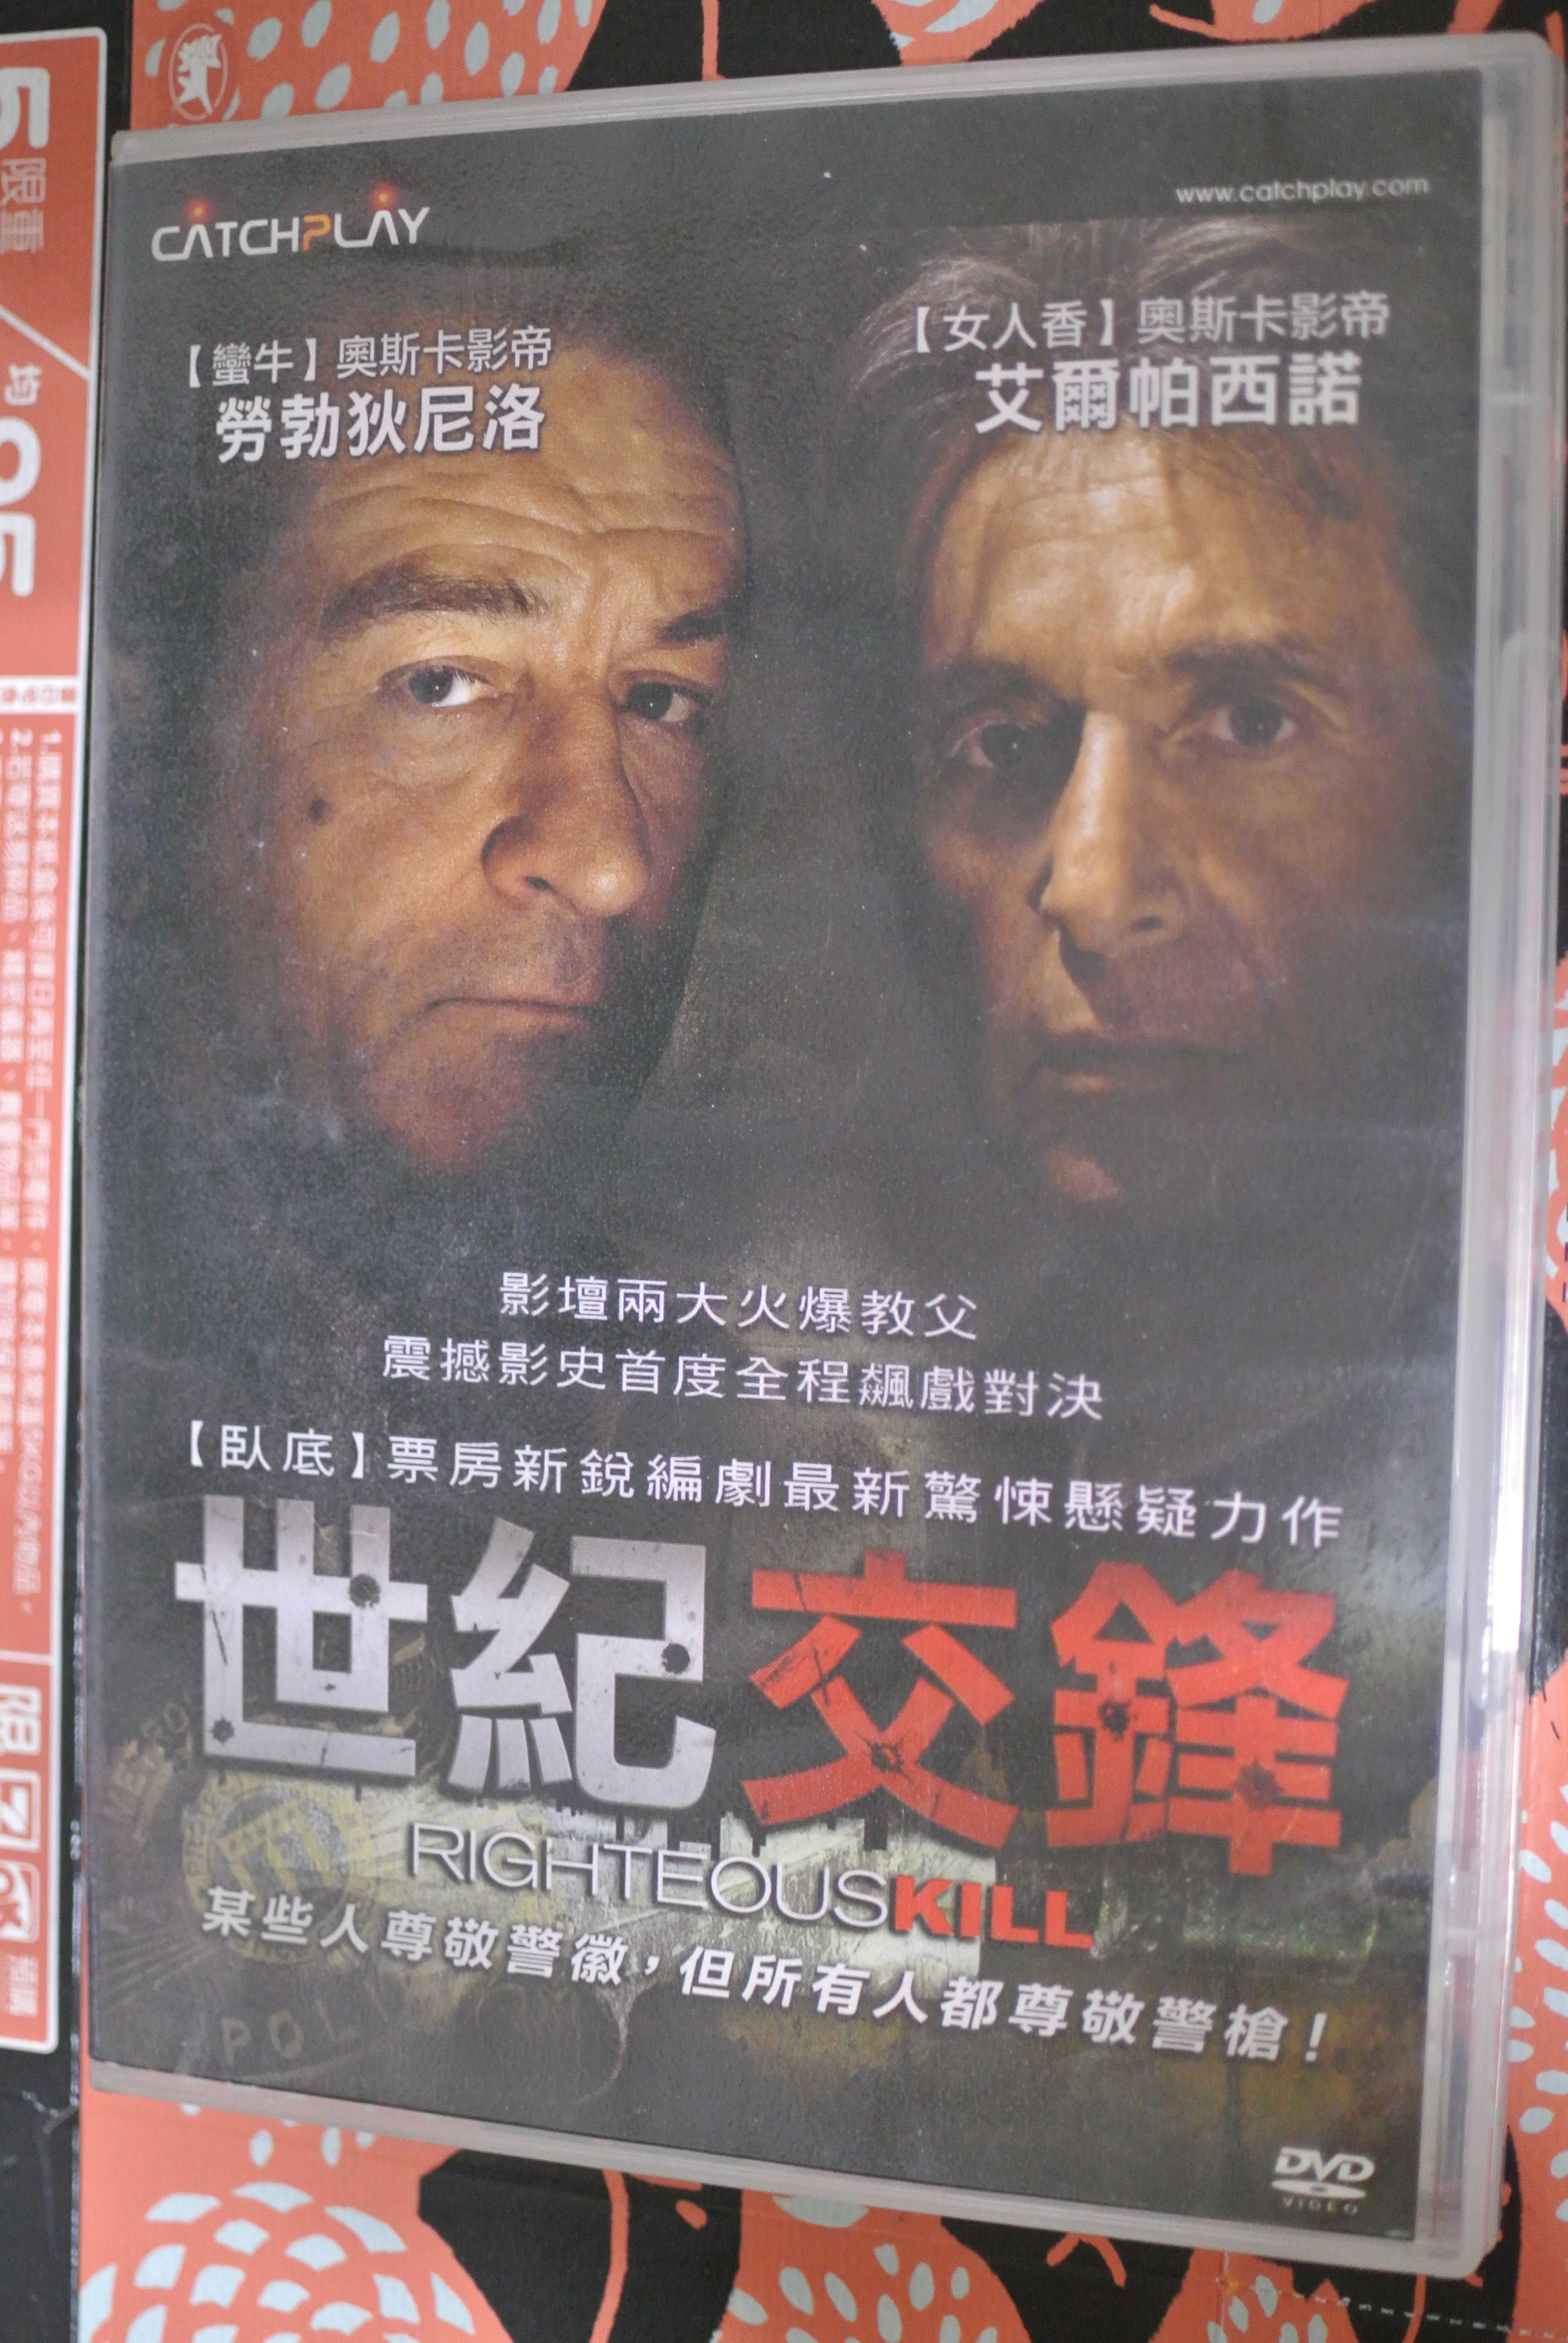 DVD ~ RIGHTEOUS KILL 世紀交鋒 ~ 2009 CATCHPLAY CPT0008